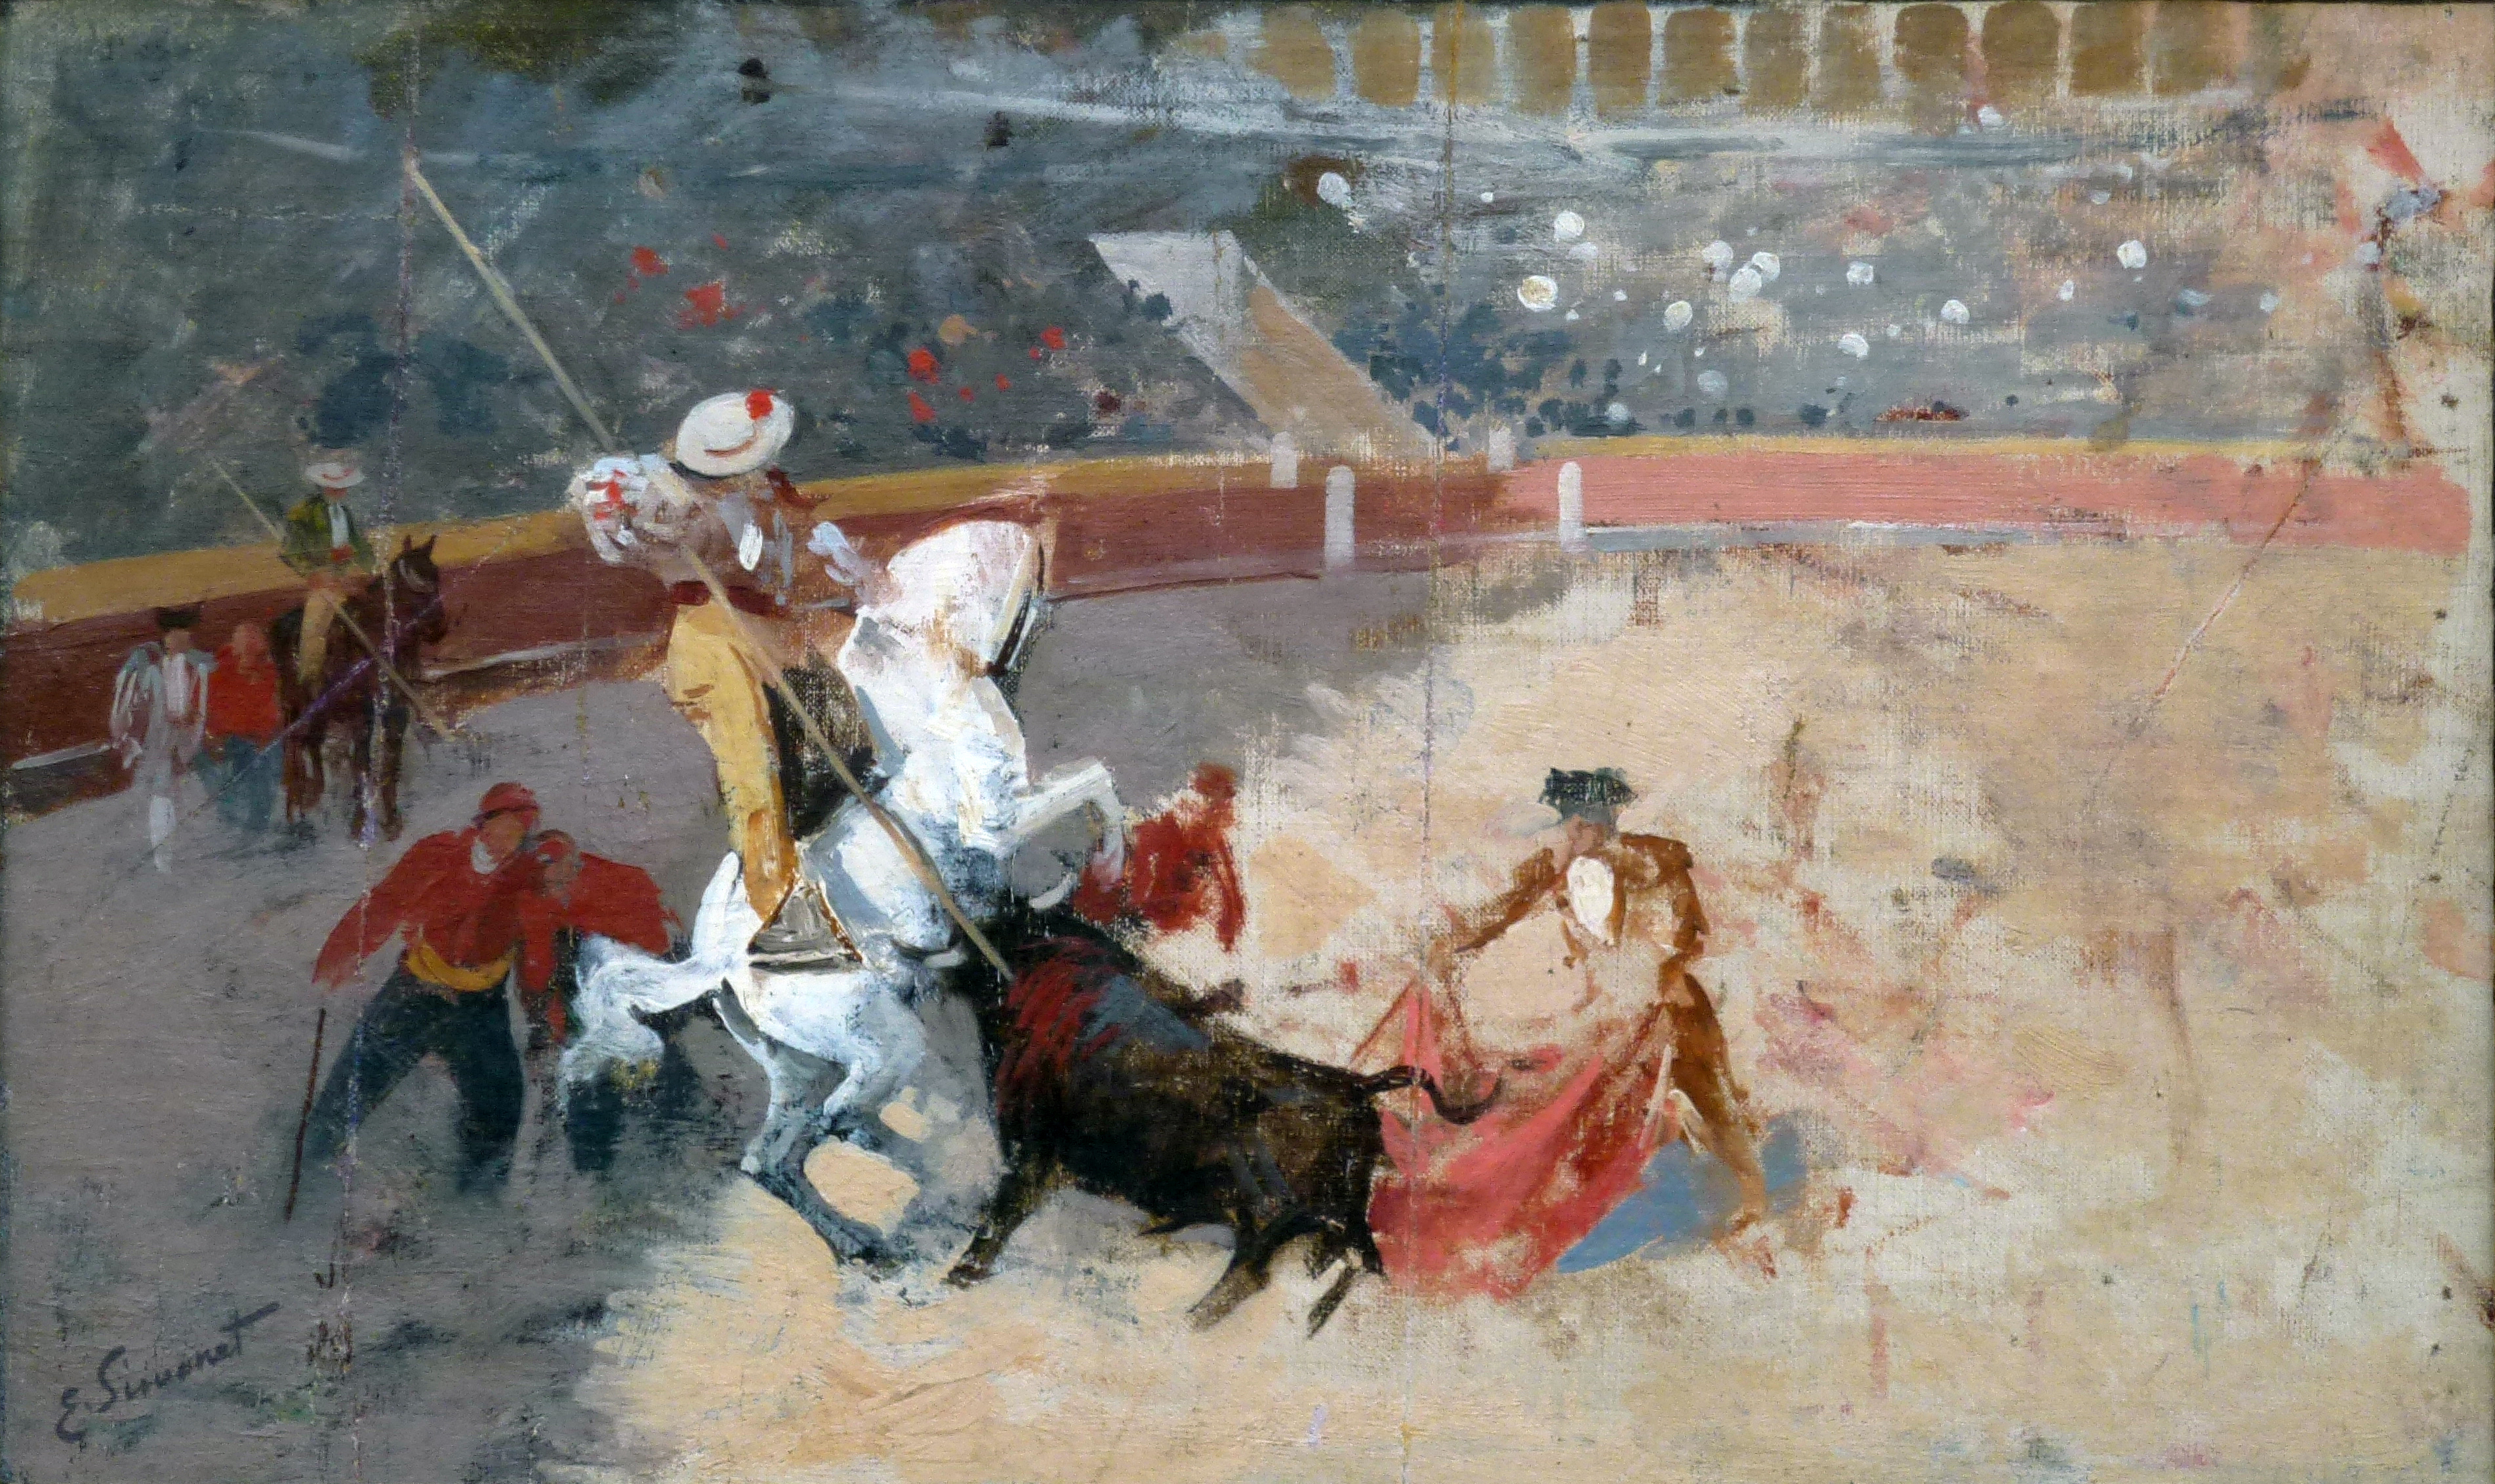 Spanish-style bullfighting